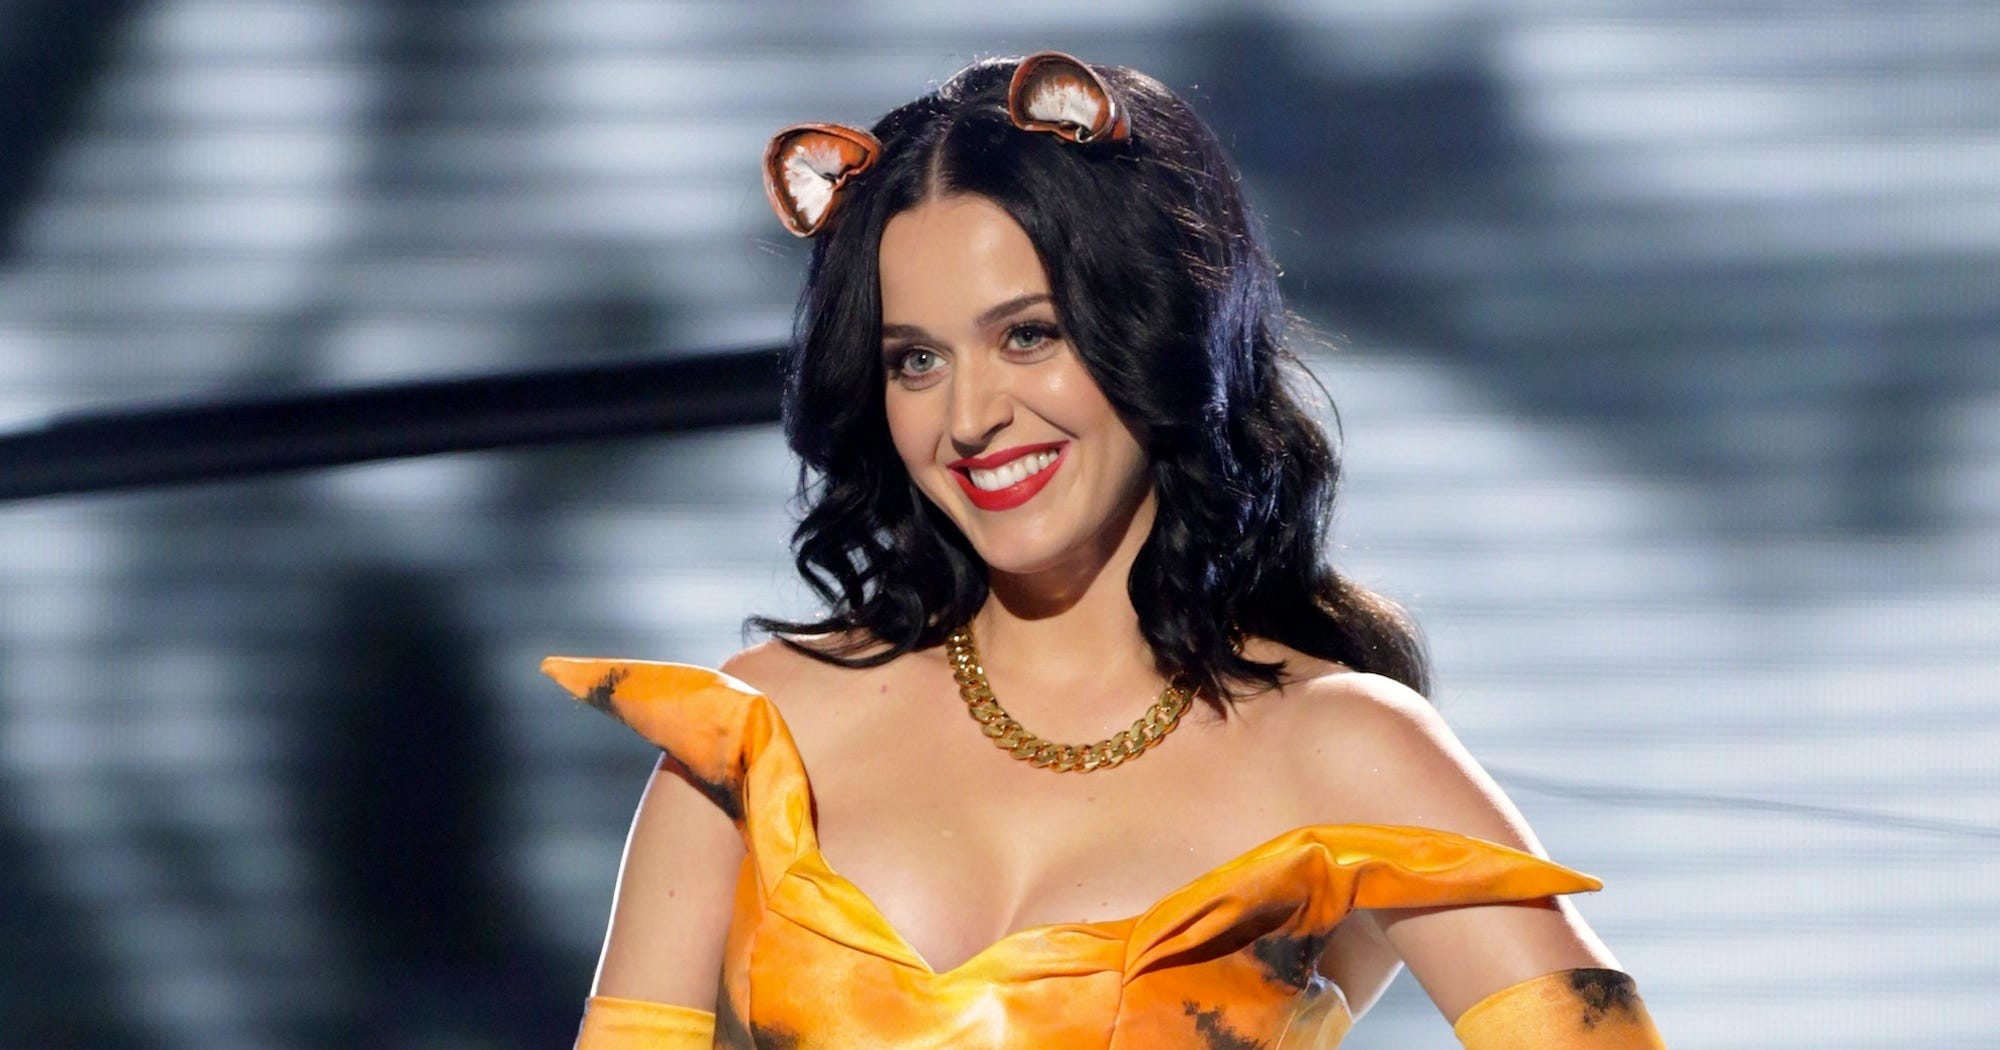 Katy Perry Fashion Stylist Not Singer